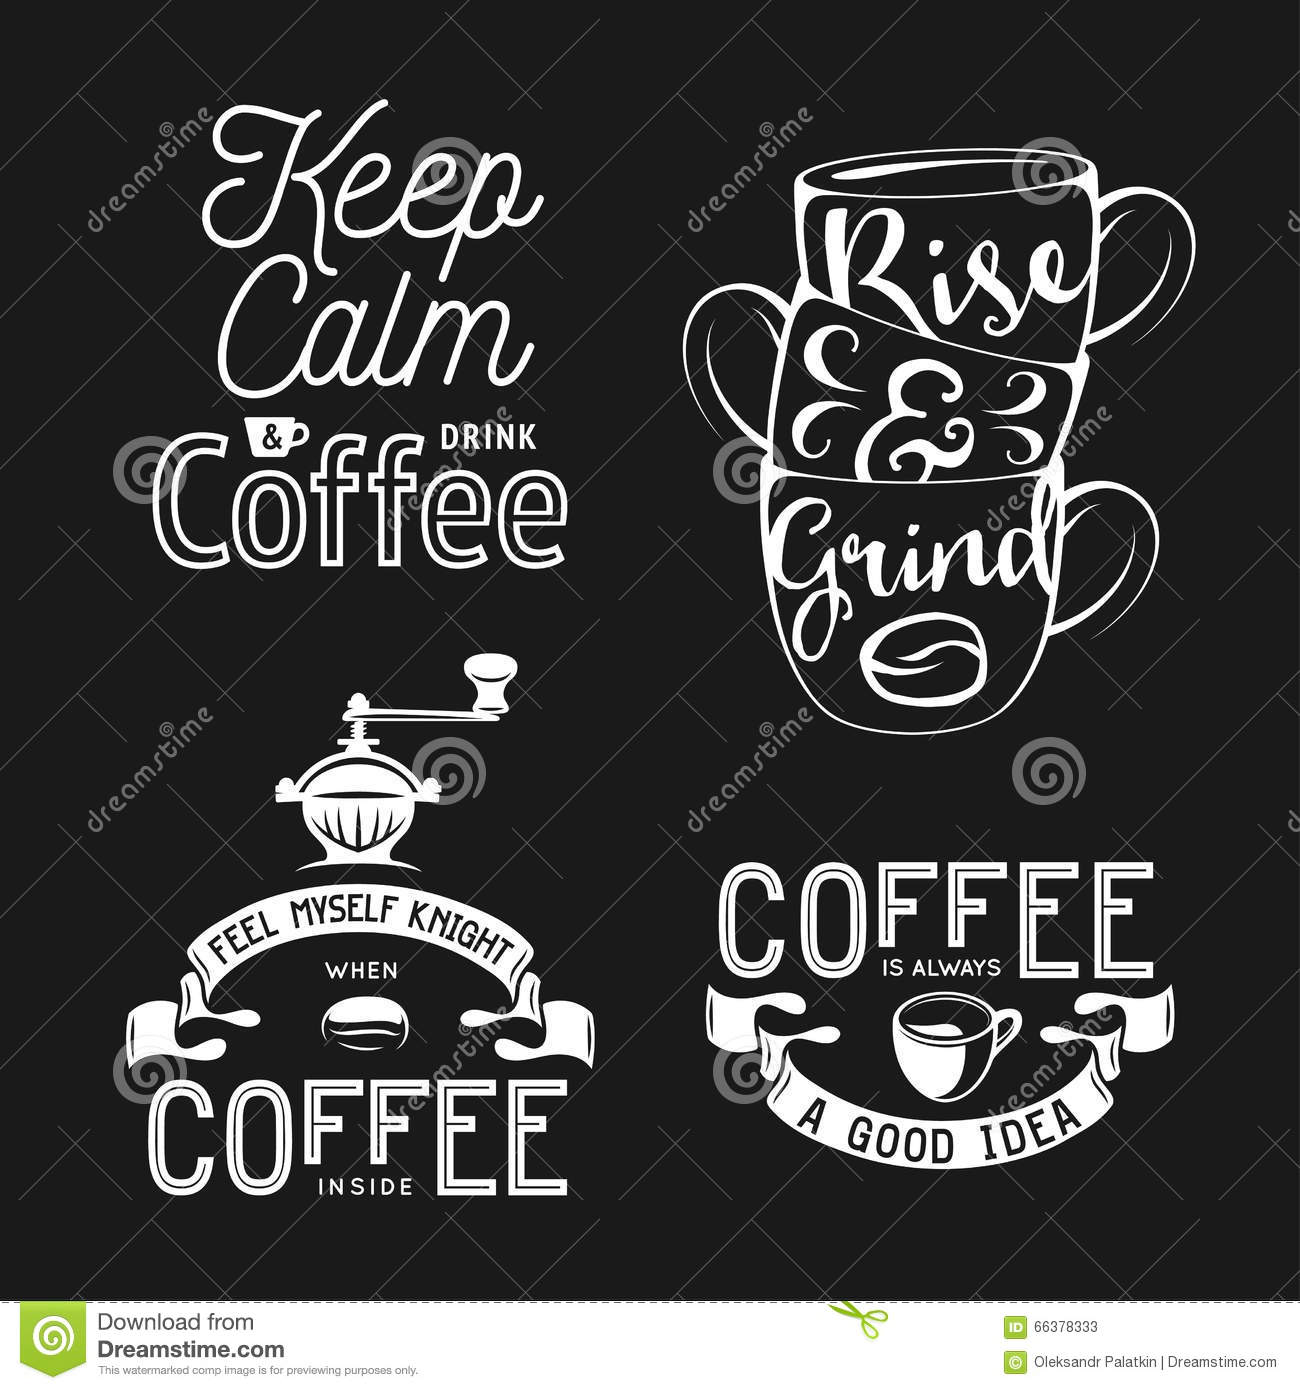 Coffee Latte Art Quotes Set Of Coffee Related Typography Quotes About Coffee